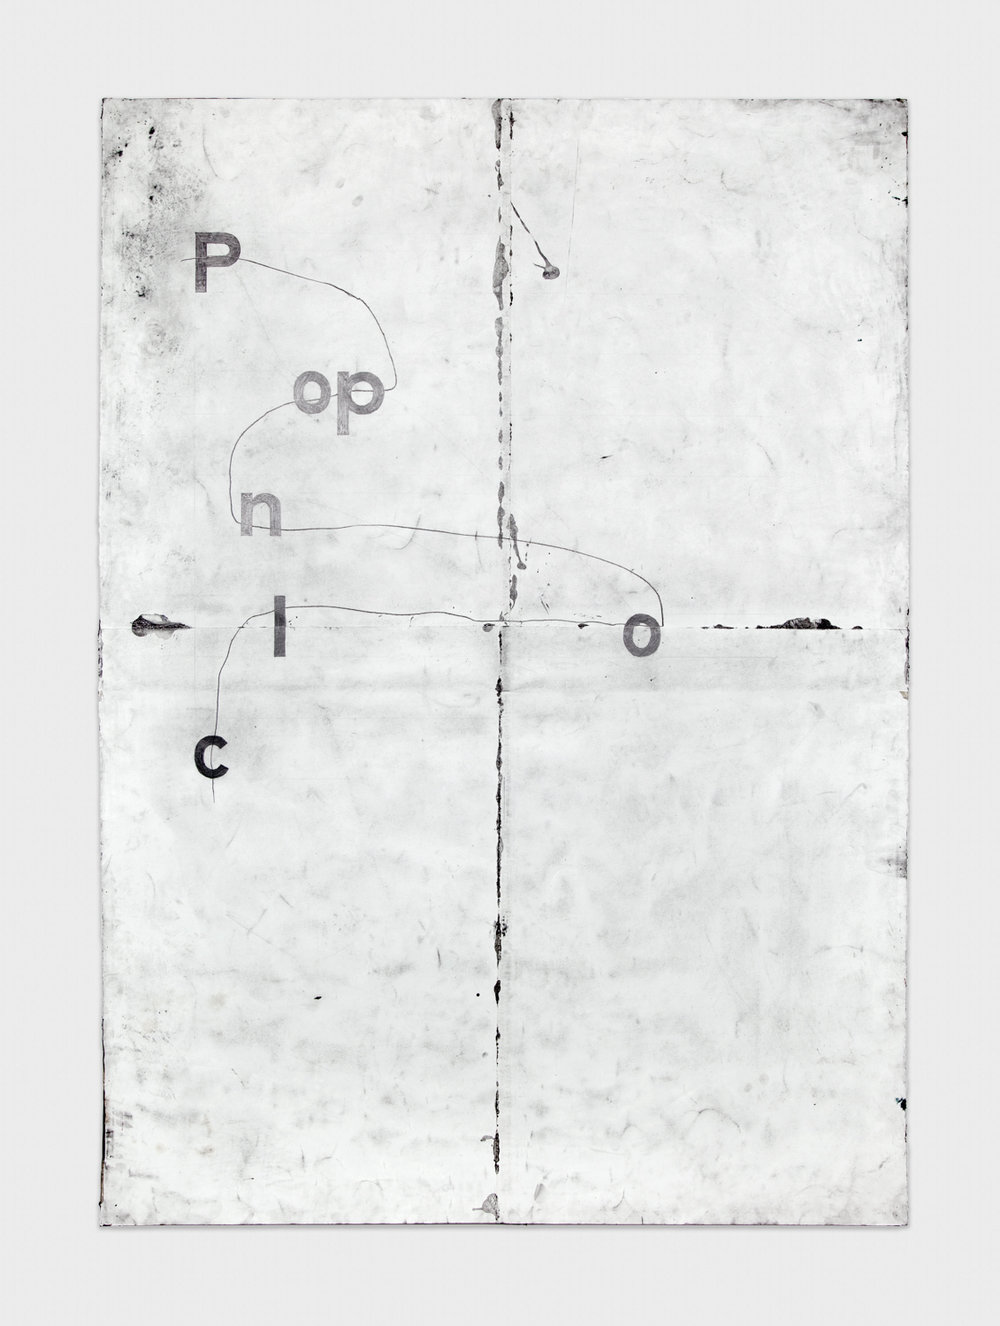 Tony Lewis  clon opP  2011 Pencil and graphite powder on paper 84h x 60w in TL006